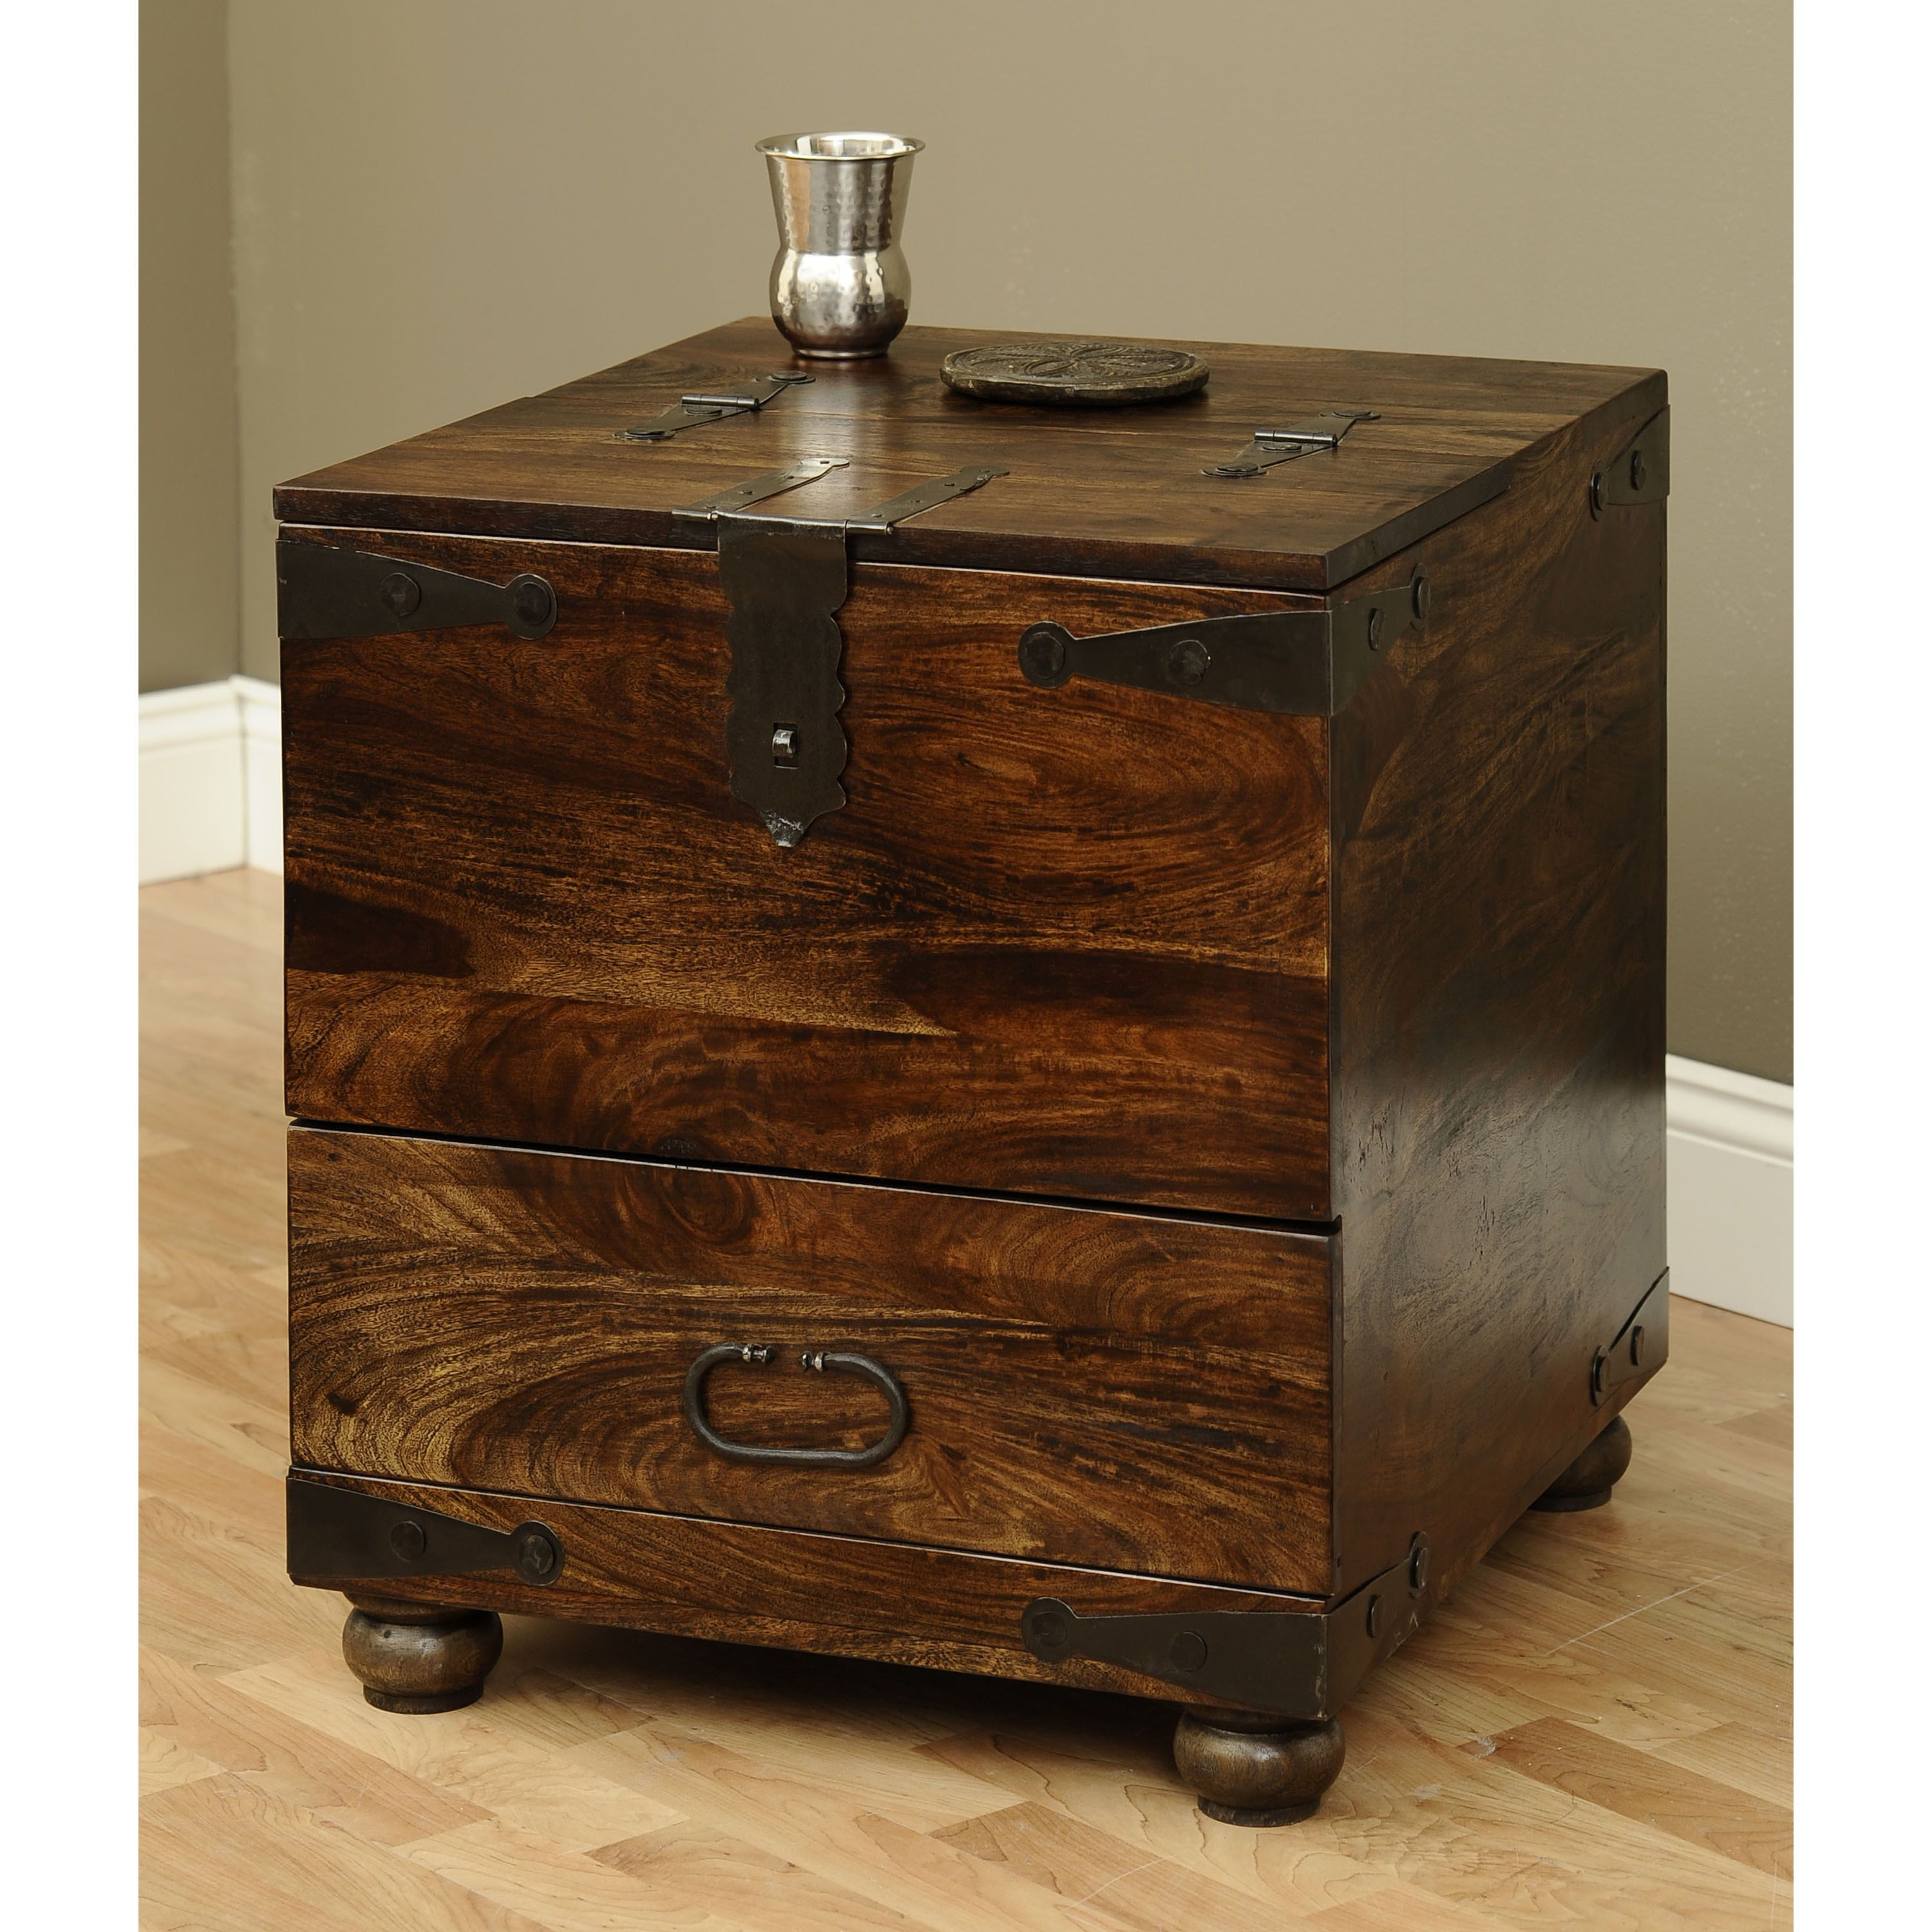 Use this thakat box as a coffee table toy chest or at the end of a